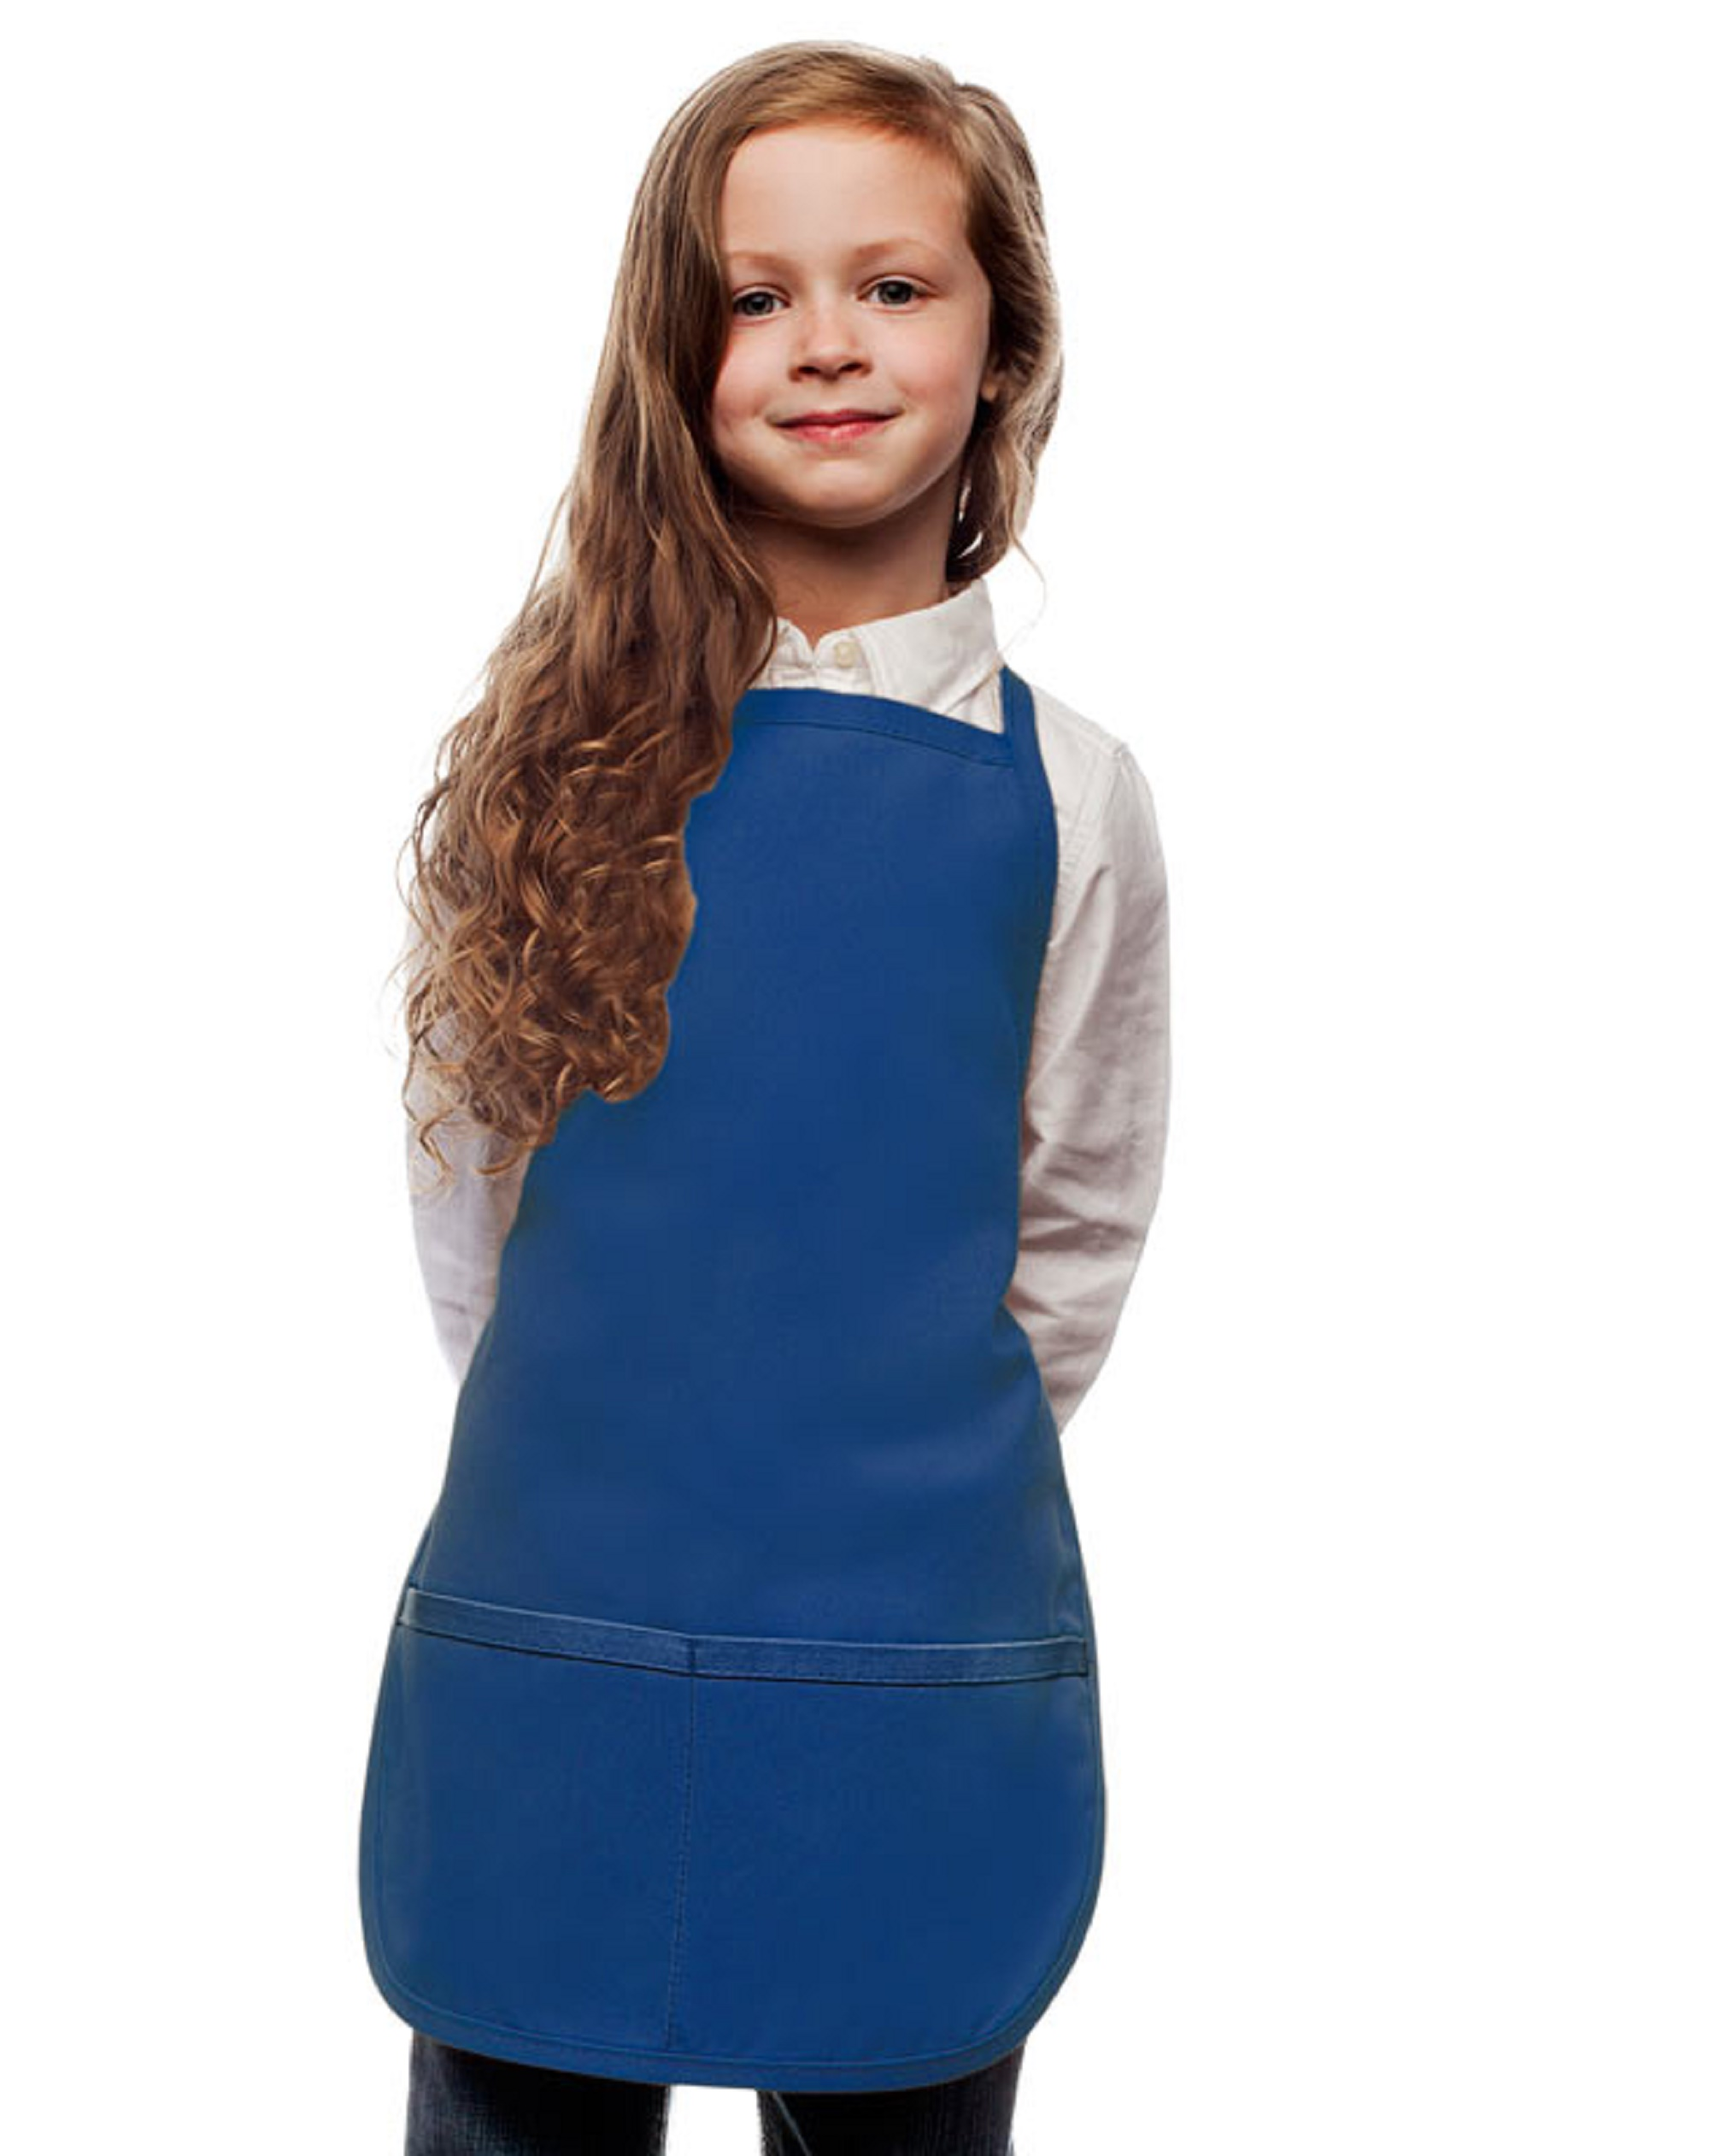 Style 250 High Quality Two Pocket Kids Bib Aprons - Royal Blue